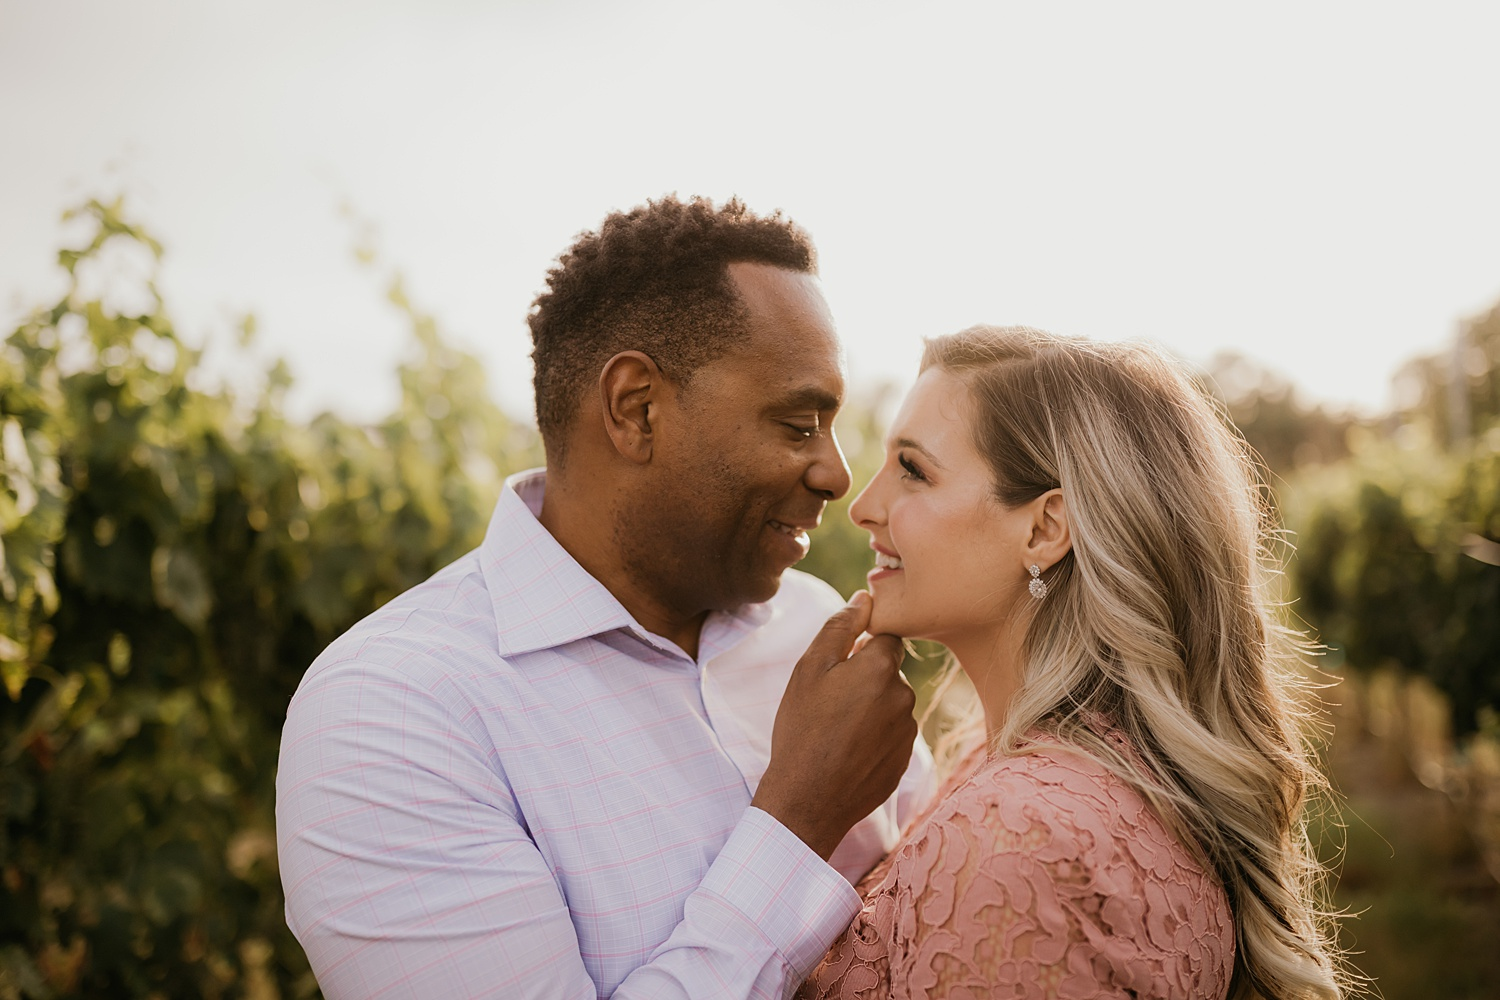 engaged_sacramento_danielle_alysse_photography.jpg